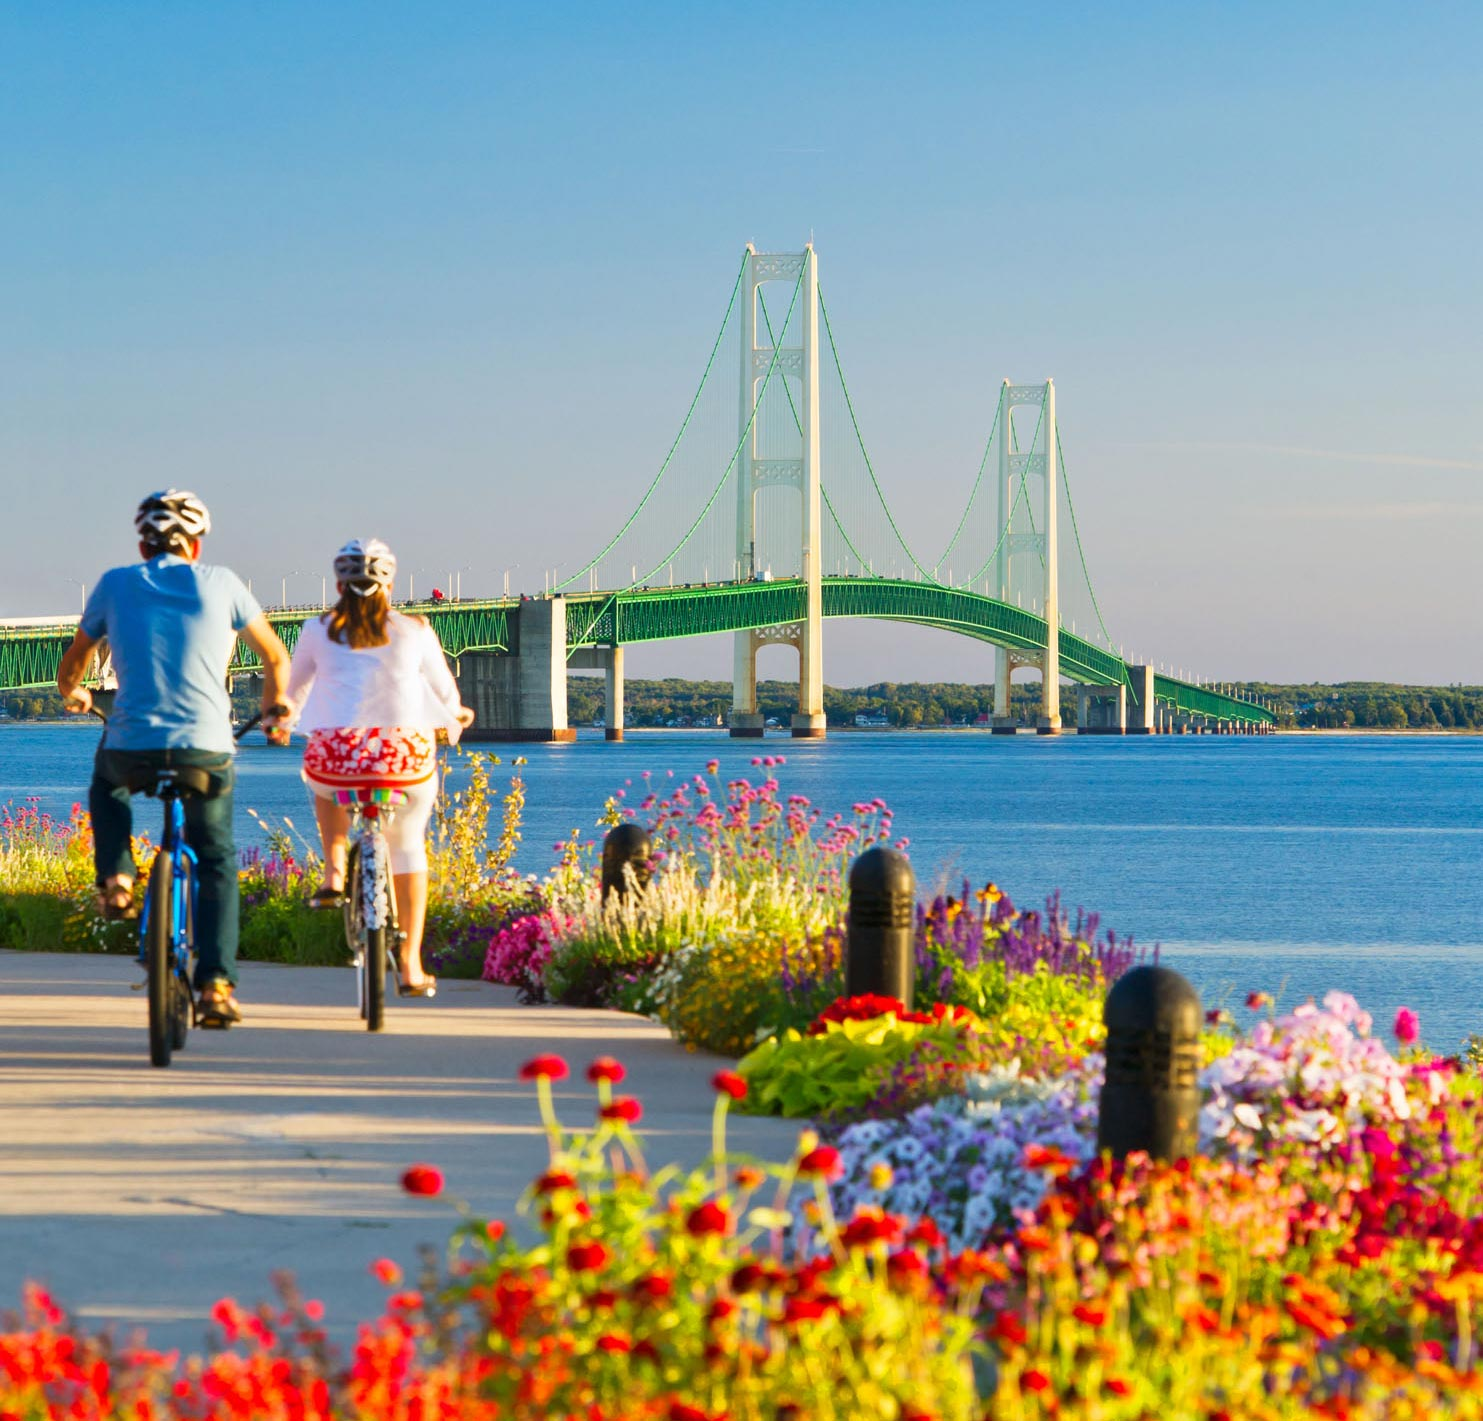 Biking Mackinaw City near the Mackinac Bridge